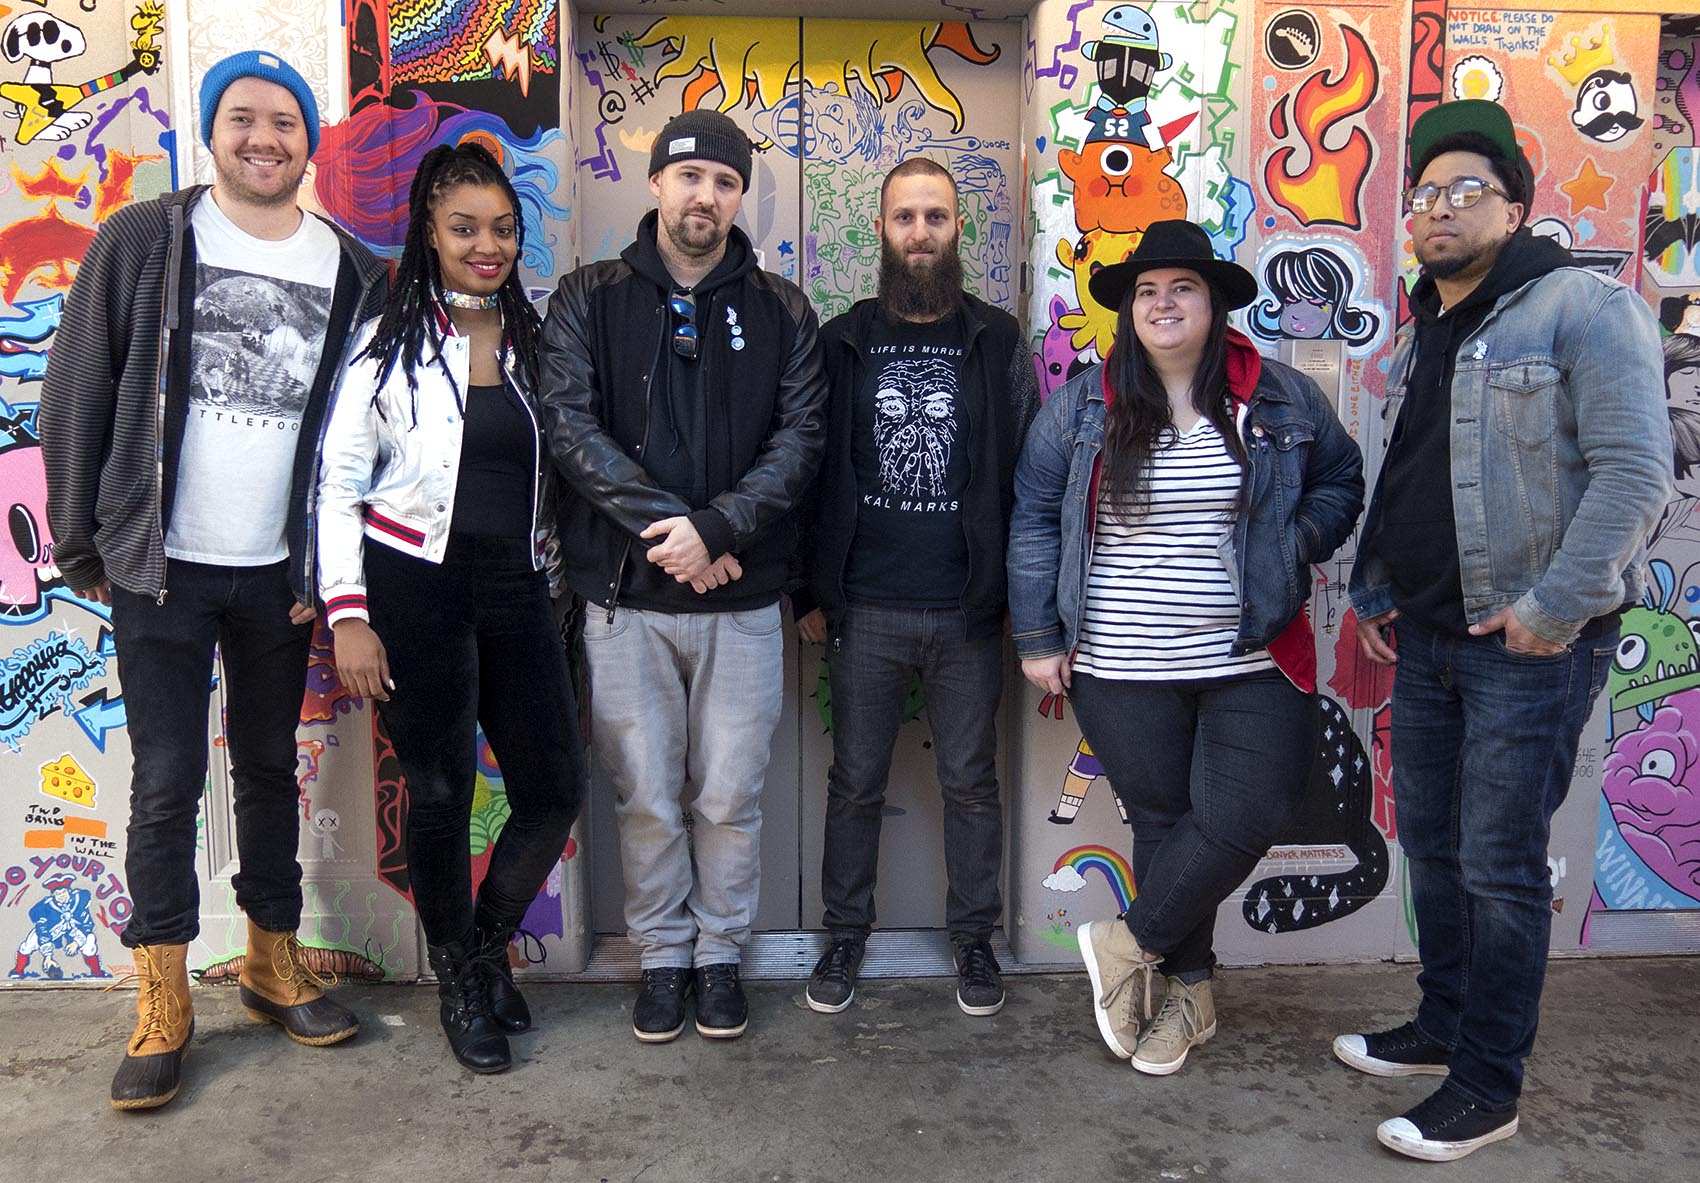 """At """"Rock Band"""" developer Harmonix's offices, from left to right: The Record Company's co-founder Matt McArthur, rapper Dutch ReBelle, producer The Arcitype, The Record Company's Program Director Jesse Vengrove, soul-blues singer Julie Rhodes and rapper Moe Pope. (Andrea Shea/WBUR)"""